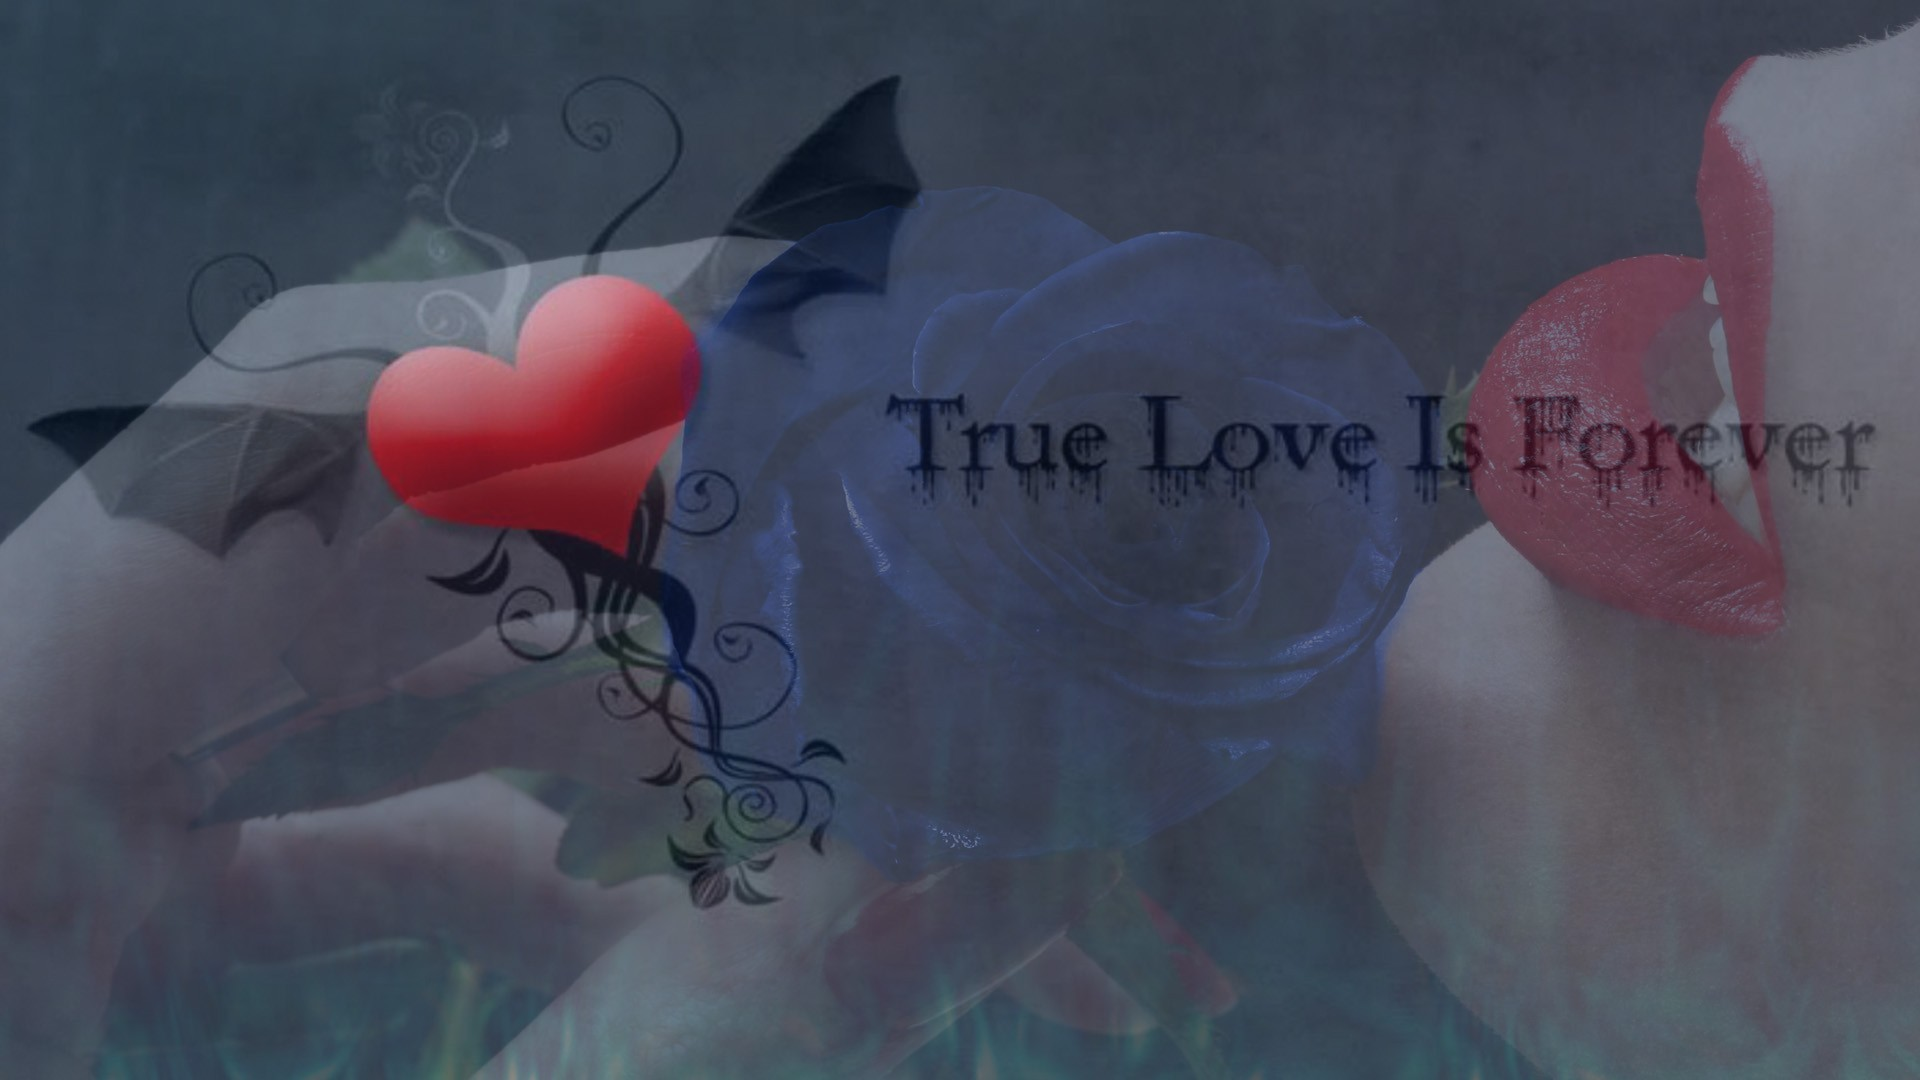 True Love Wallpaper Full Hd : True love is forever wallpaper AllWallpaper.in #5616 Pc en